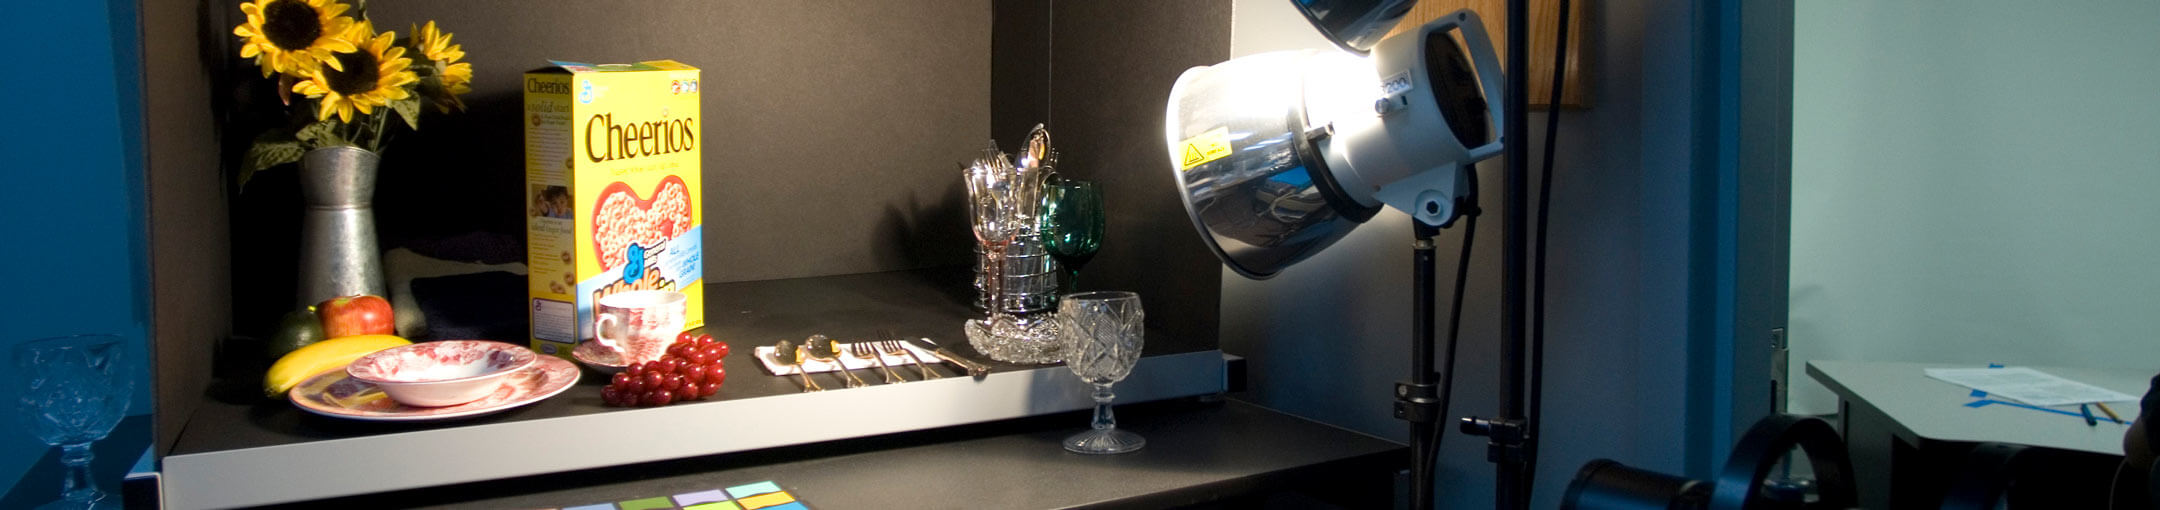 Desk with spotlight on plate, sunflowers in vase, utensils, glasses, and Cheerios cereal.